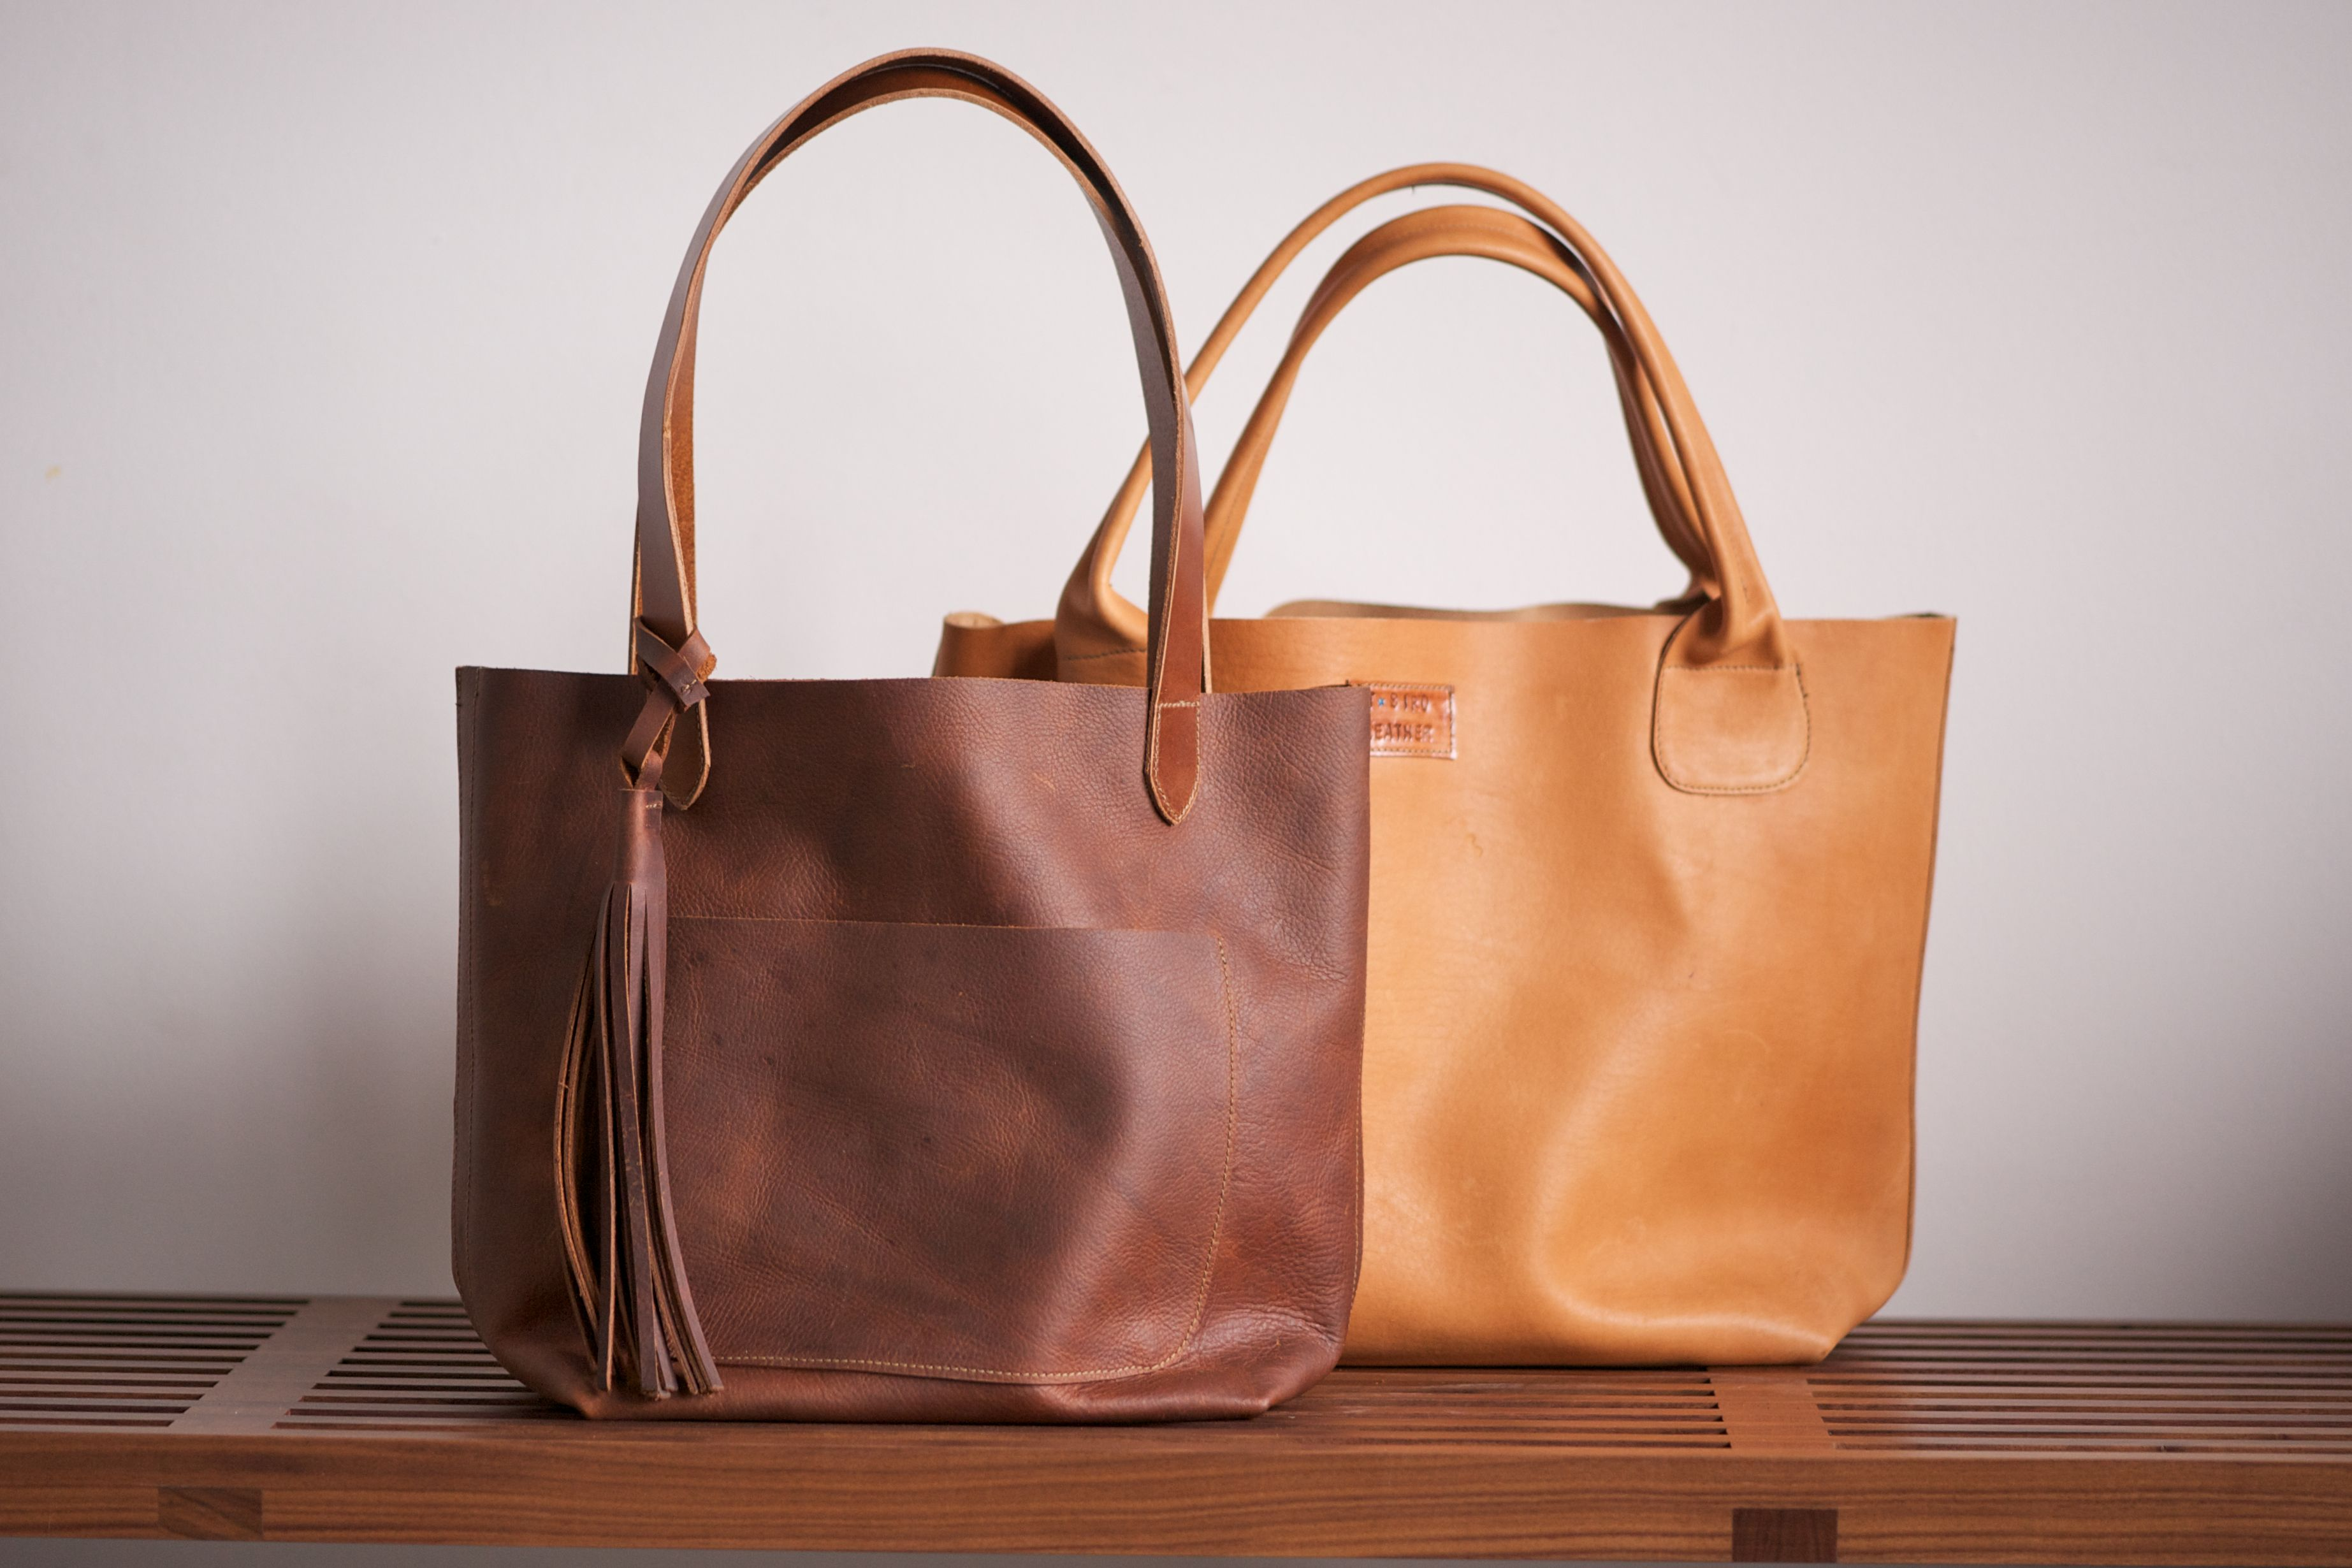 Handbags for women Tote bags Tote purse Bags /& purses Gift bags Custom totes Autumns calling tote Grocery bags Shoulder bags